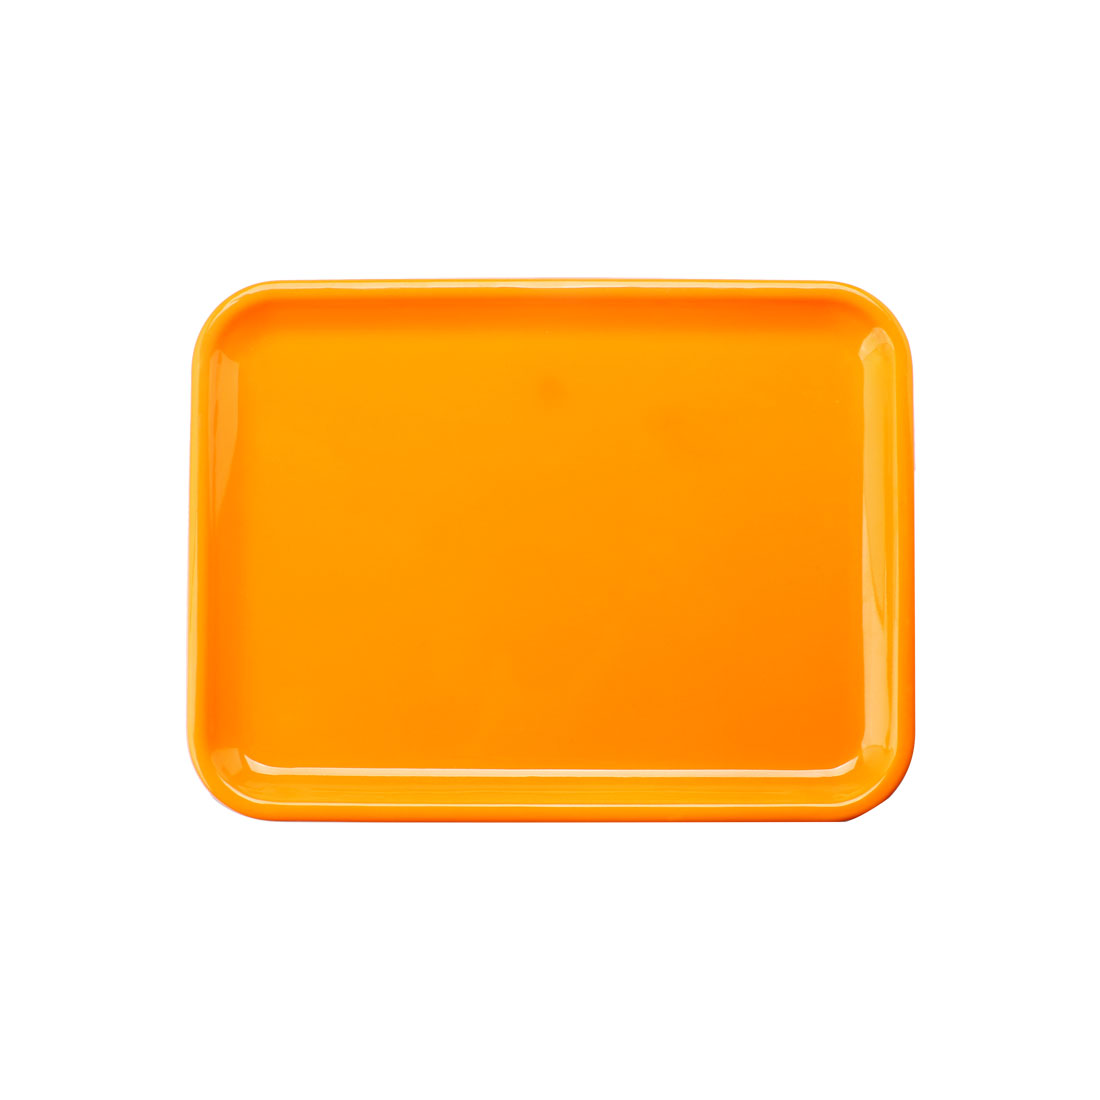 "Hotel Restaurant Plastic Food Drinks Serving Tray Yellow 10"" Length"